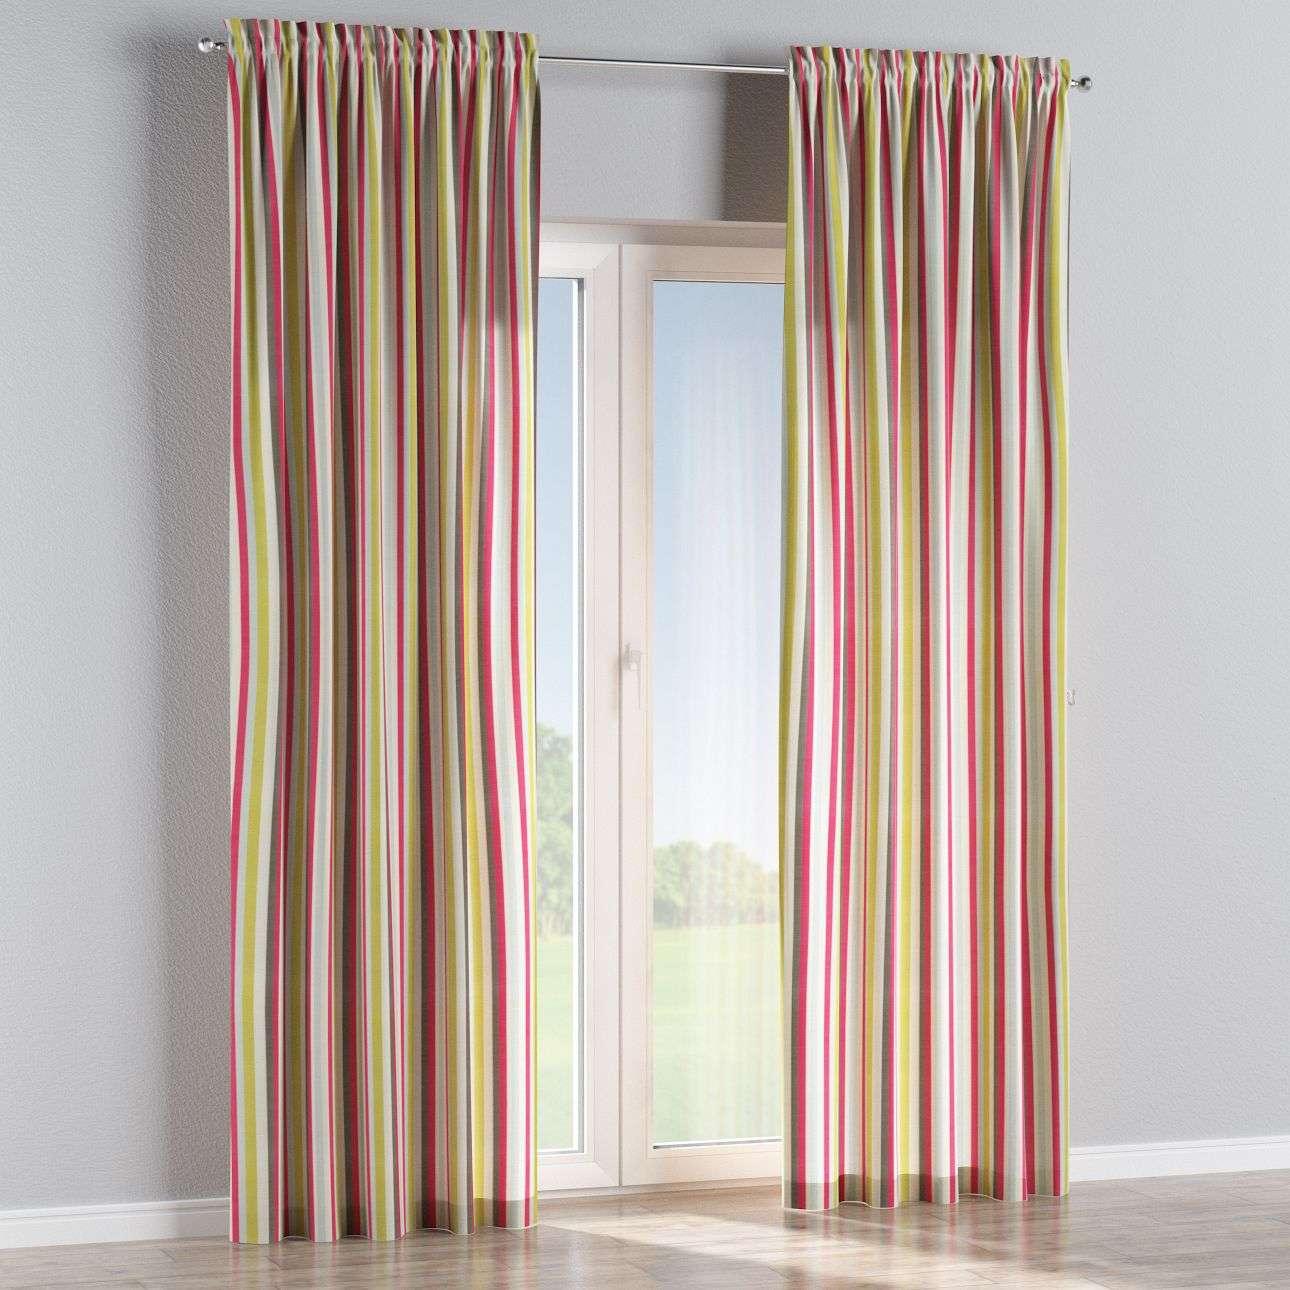 Slot and frill curtains in collection Flowers, fabric: 140-81